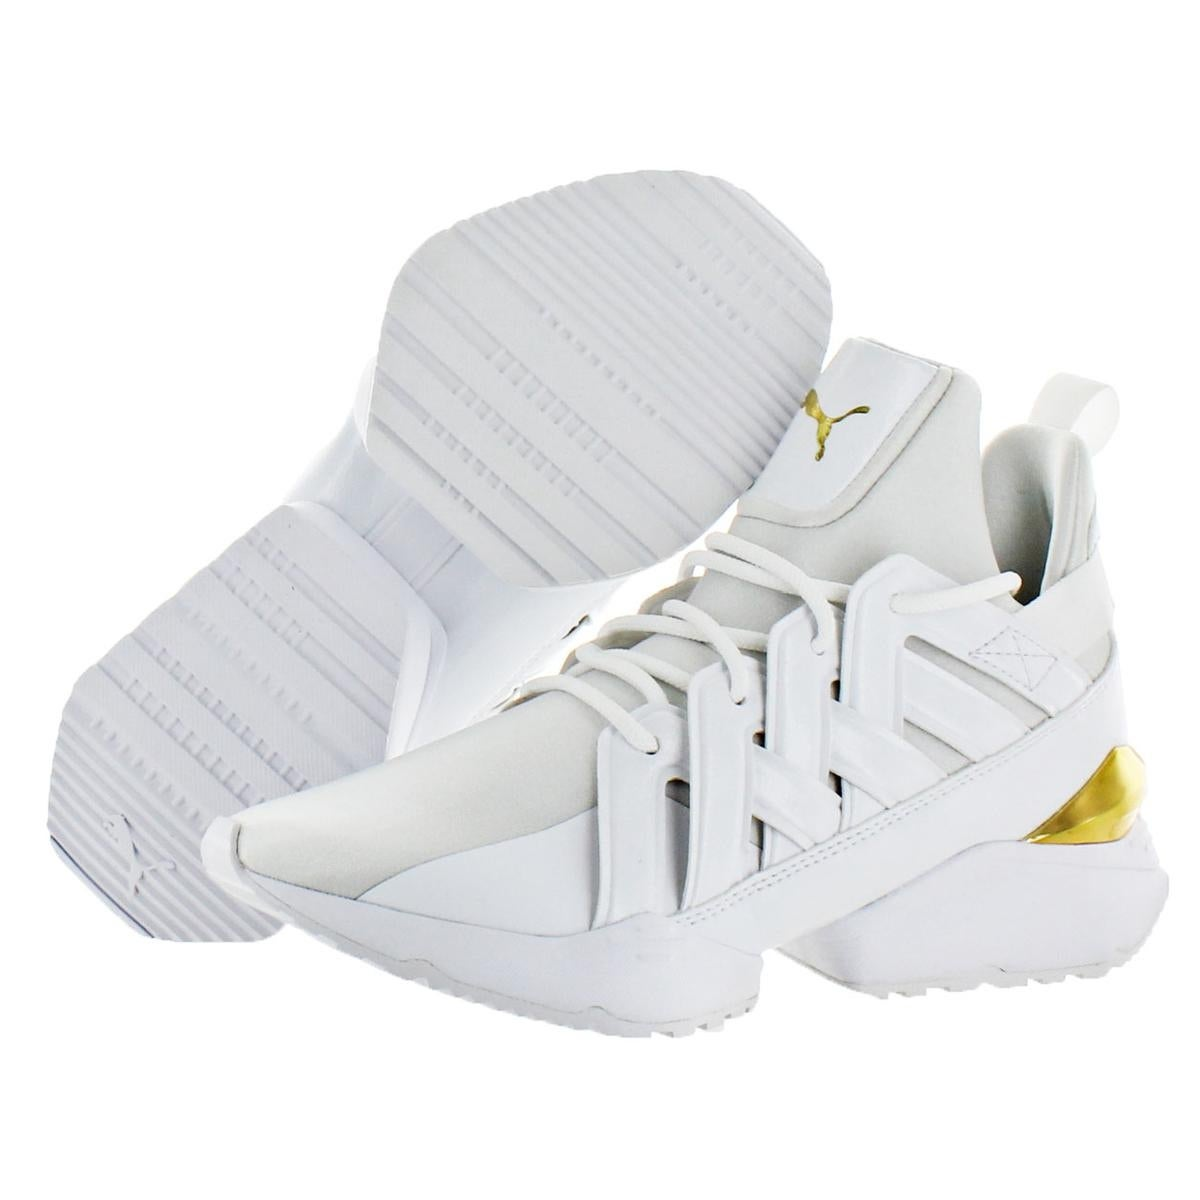 53f326fc2cbb Shop Puma Womens Muse Echo New School Trainers Fashion Athleisure - Free  Shipping Today - Overstock - 23446759